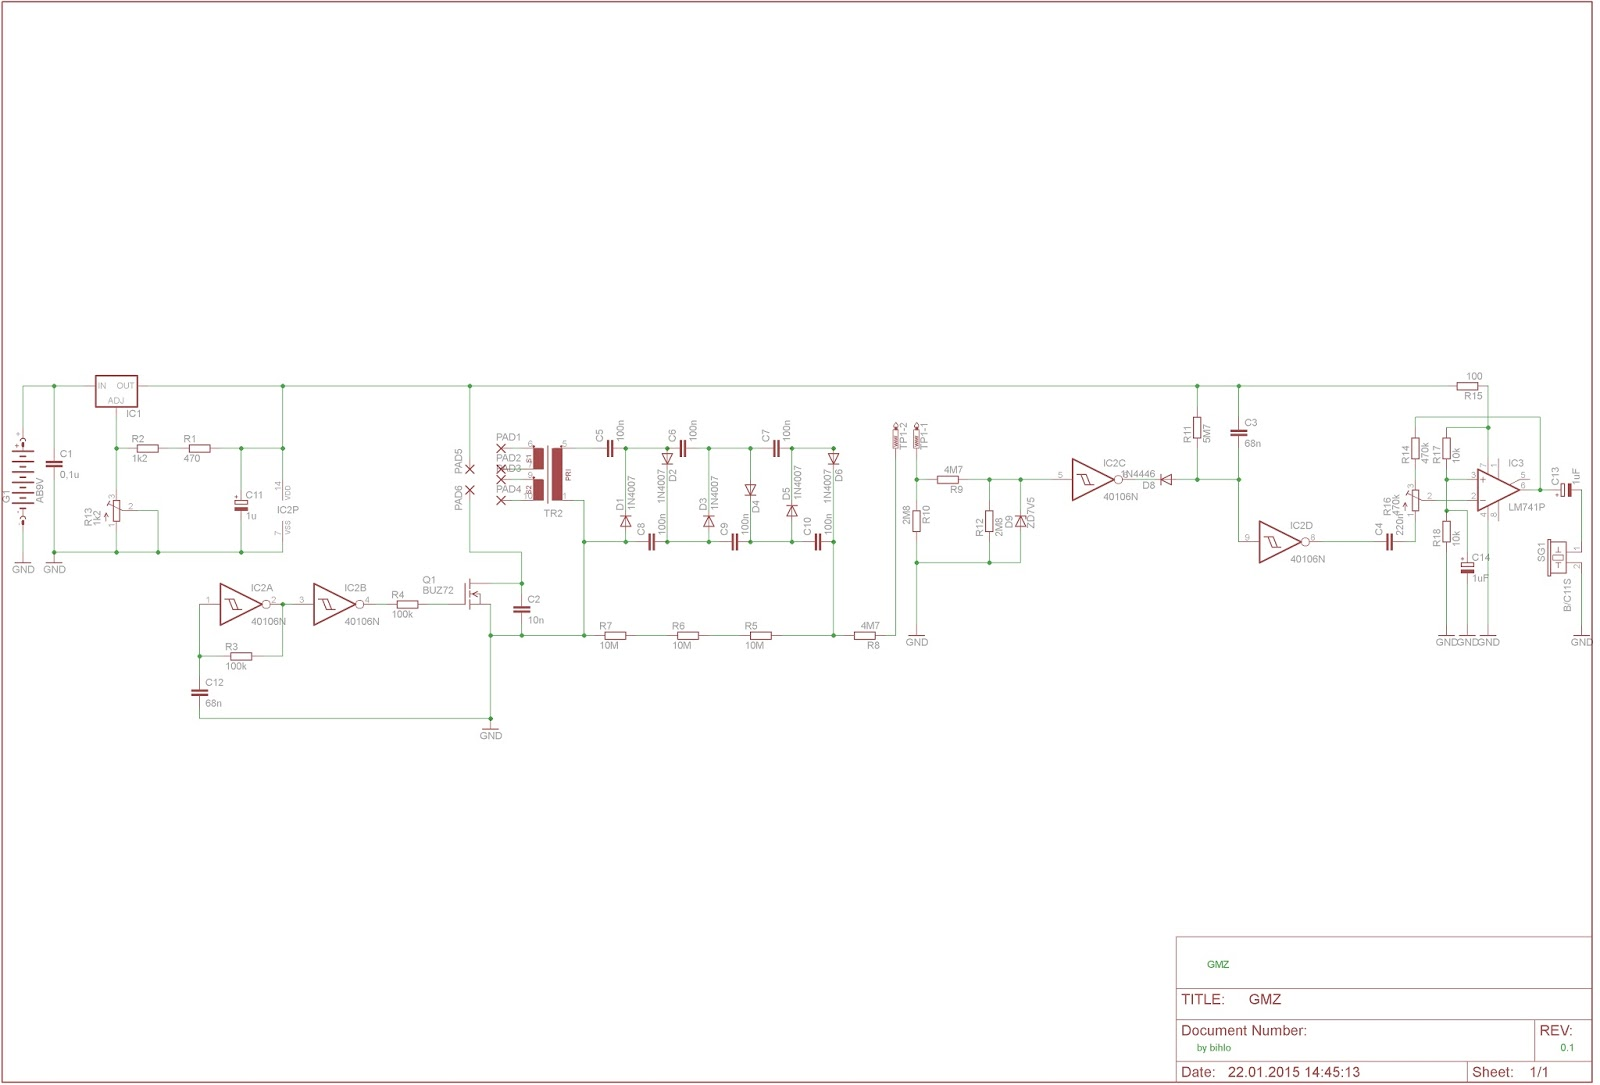 Bihlo Ingmars Vintage Blog Amplifier Classes From A To H Circuit Cellar Wiring Diagram With High Voltage Supply And Pulse